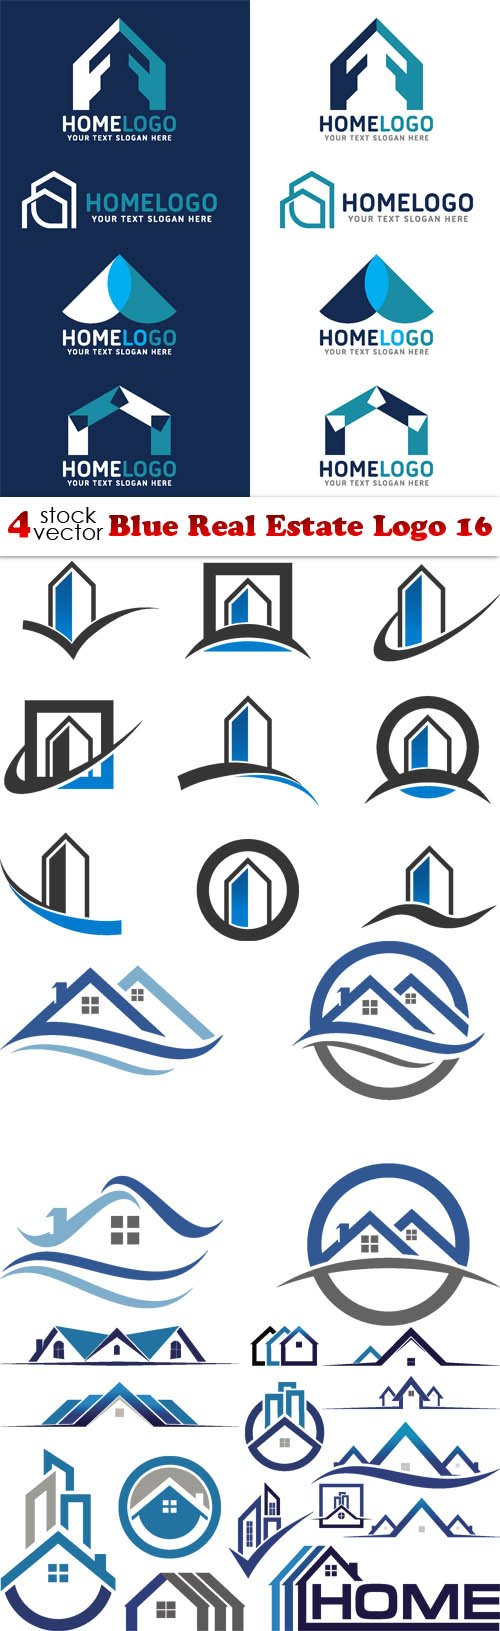 Vectors - Blue Real Estate Logo 16